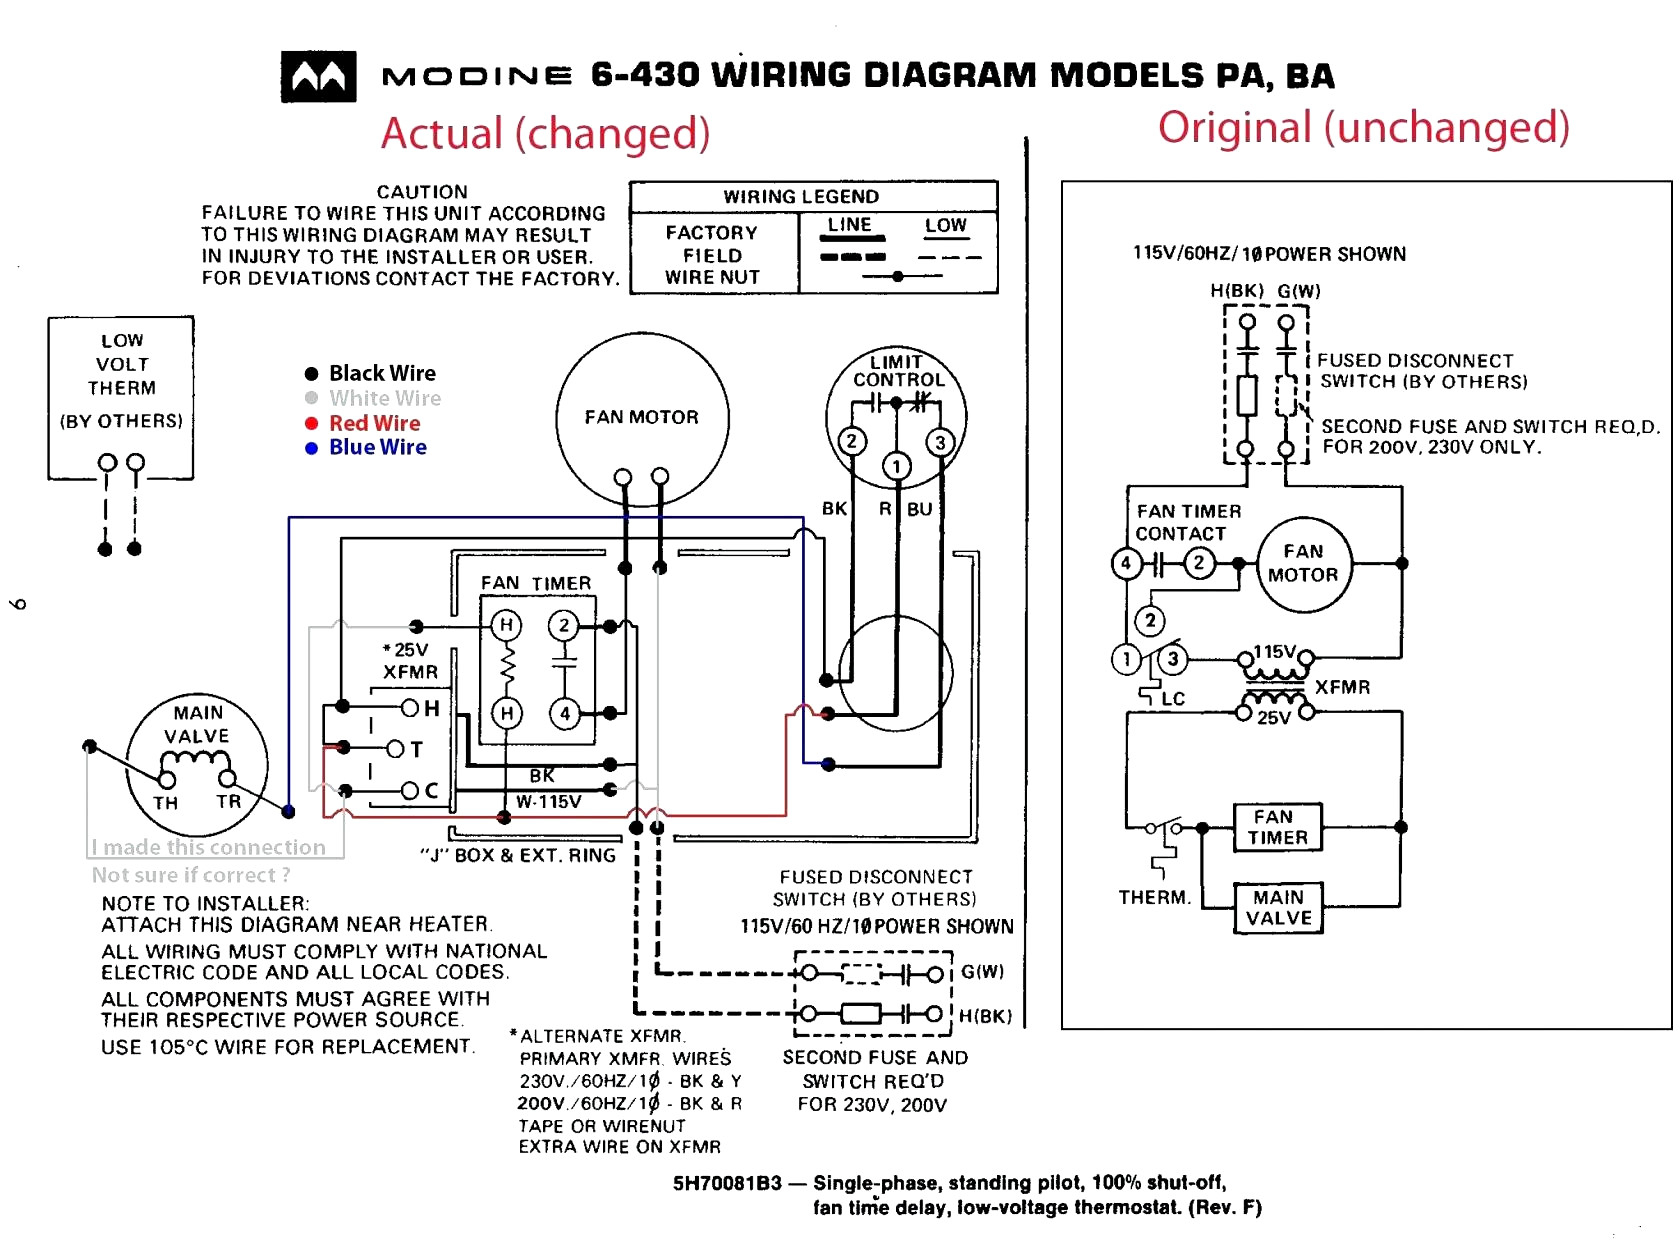 honeywell fan limit switch wiring diagram Collection-Ceiling Fan Installation Red Wire Luxury Honeywell Fan Limit Switch Wiring Diagram App A Light Control 2-l